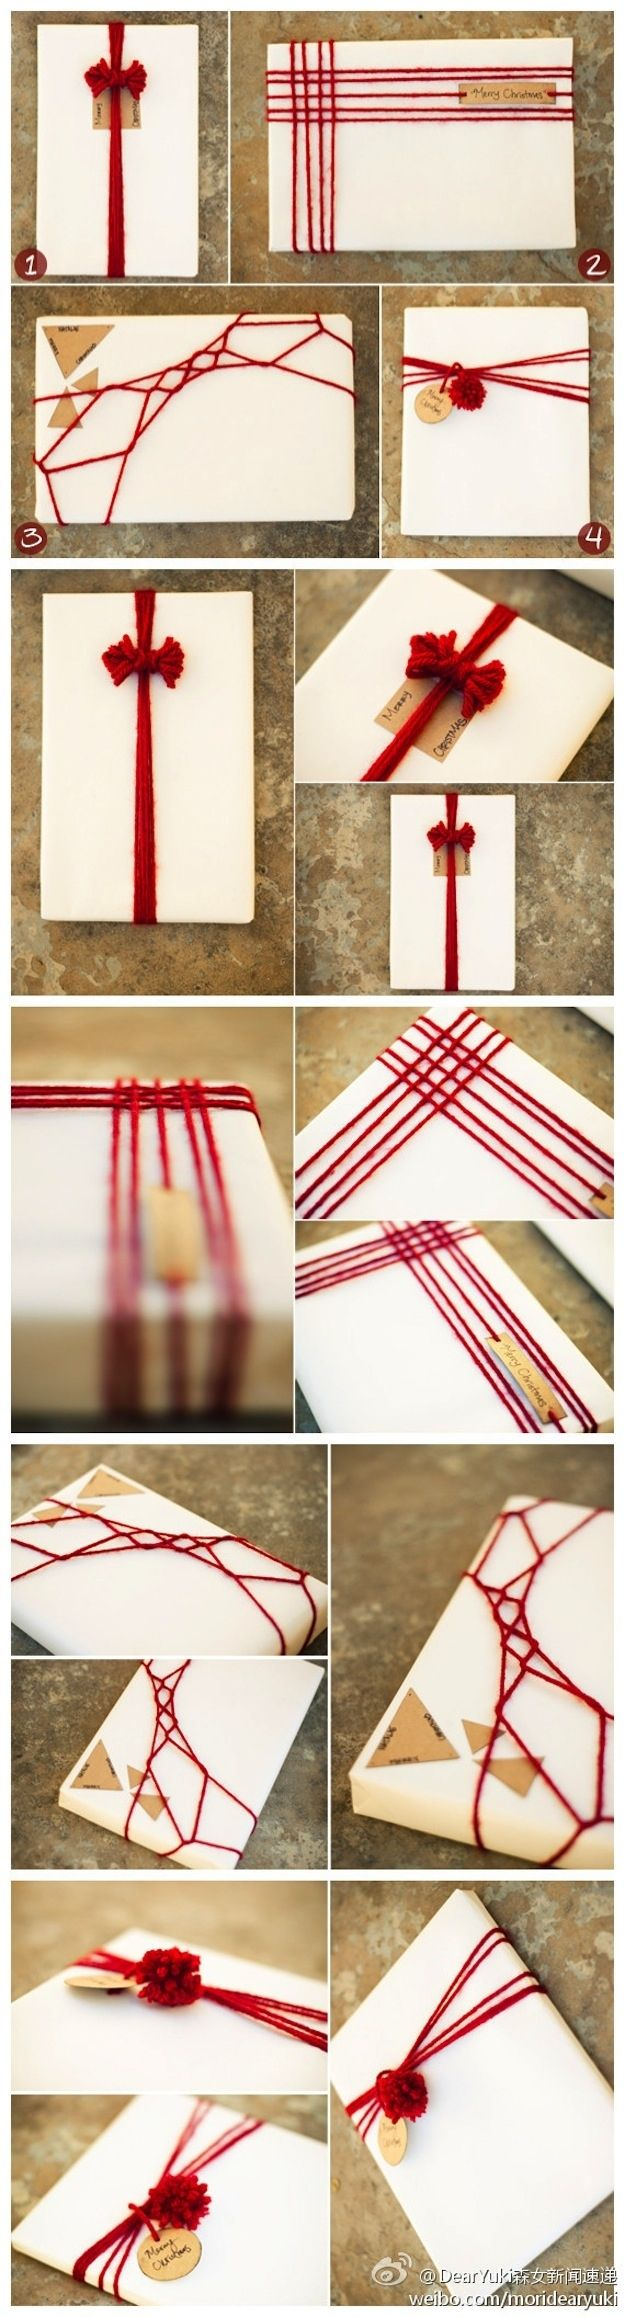 If you're feeling adventurous in your gift wrapping, use yarn to make creative patterns and bows.